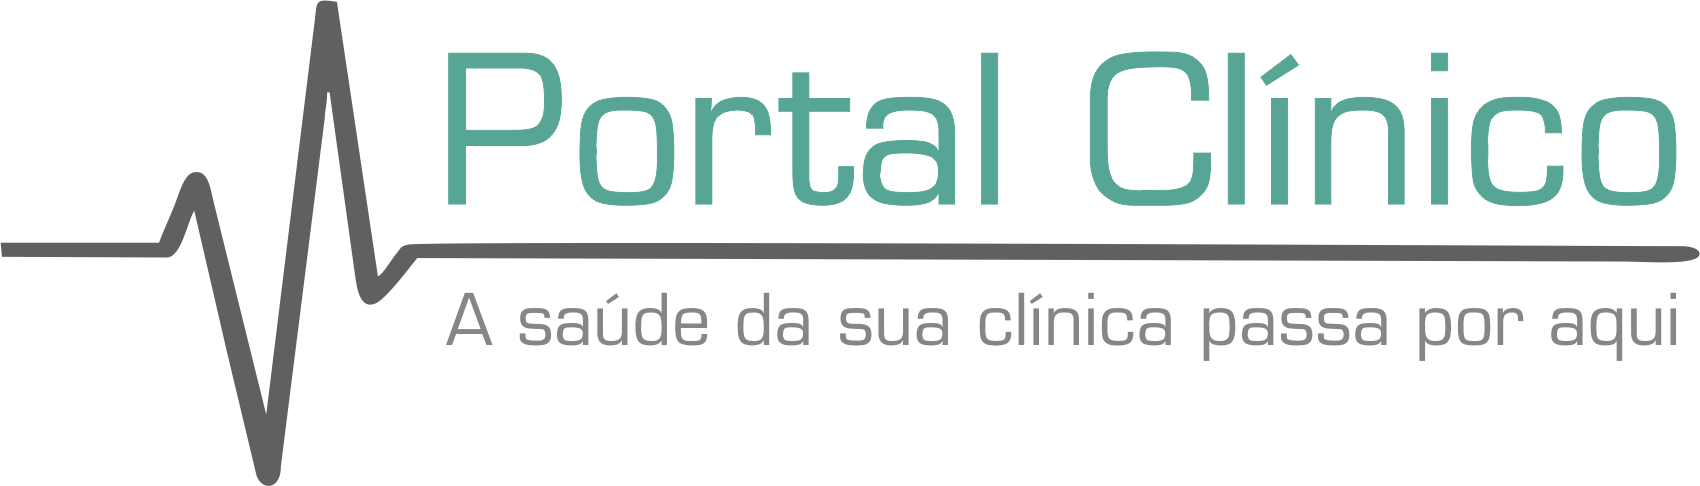 portal-clinico-icon